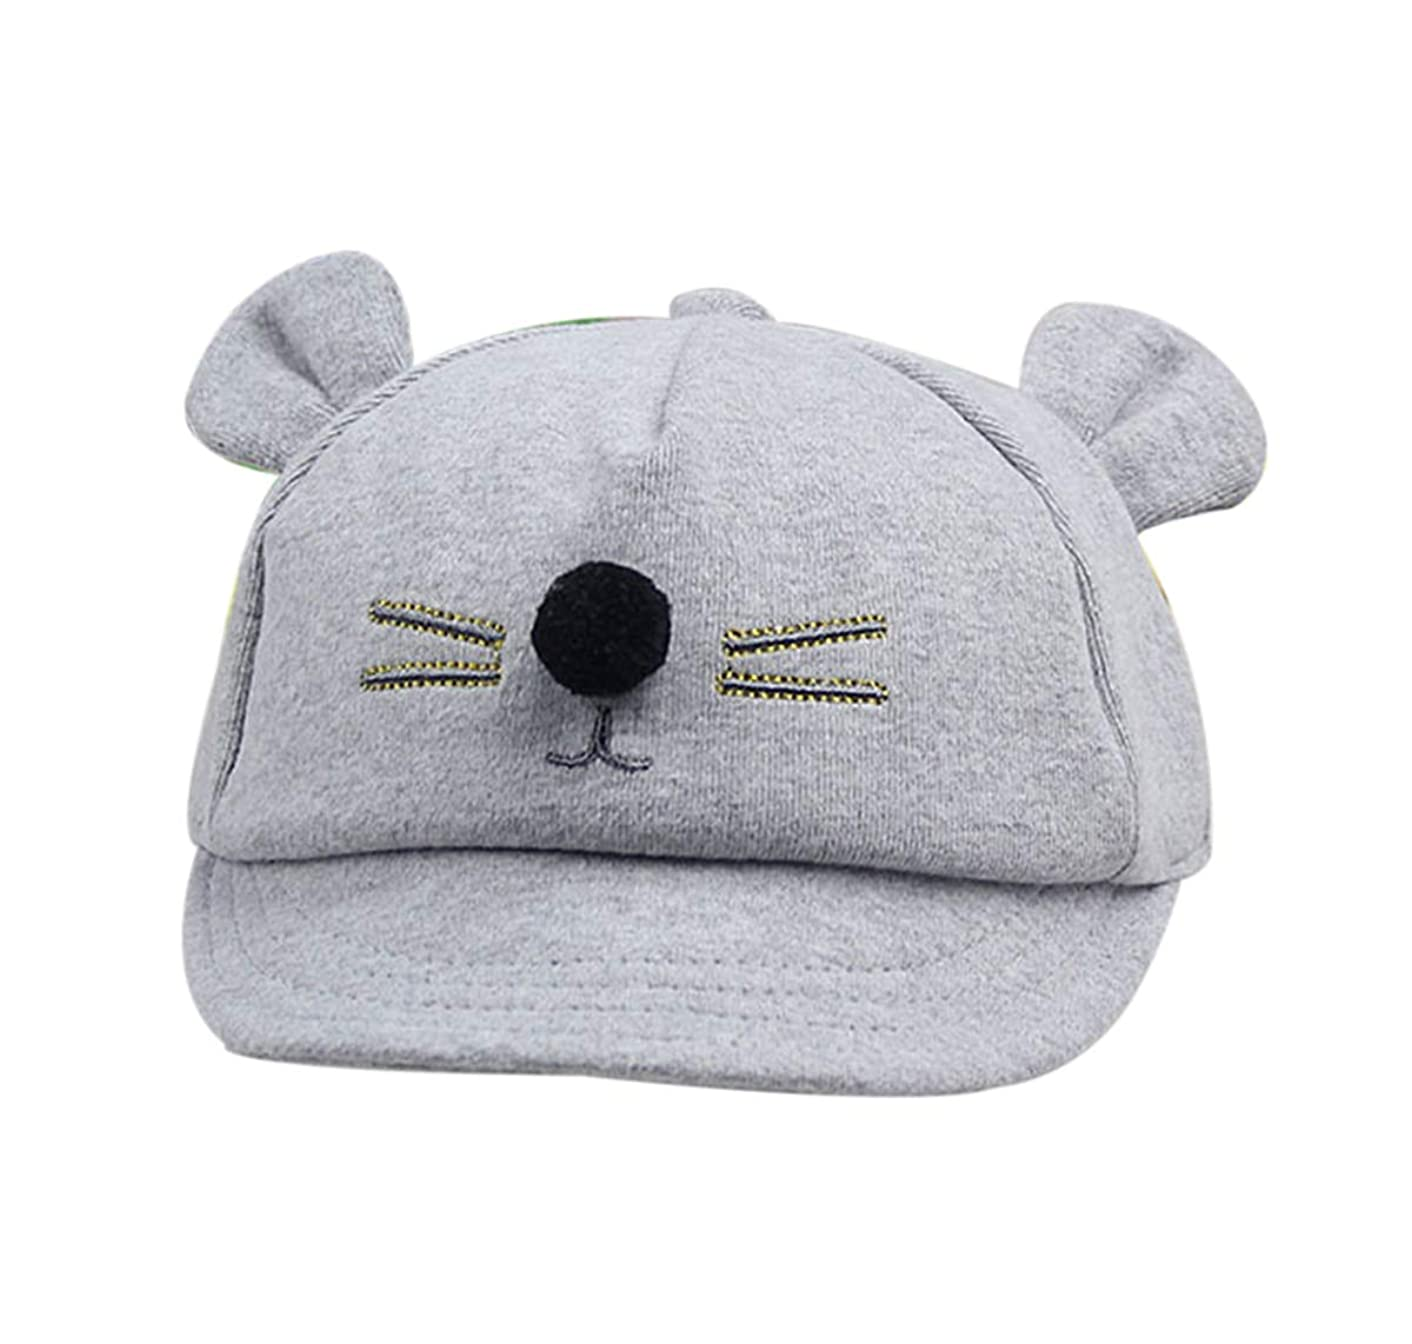 Newborn Baby Toddler Baseball Cap Cotton Hats with Cute Mouse Ears for Boys Girls